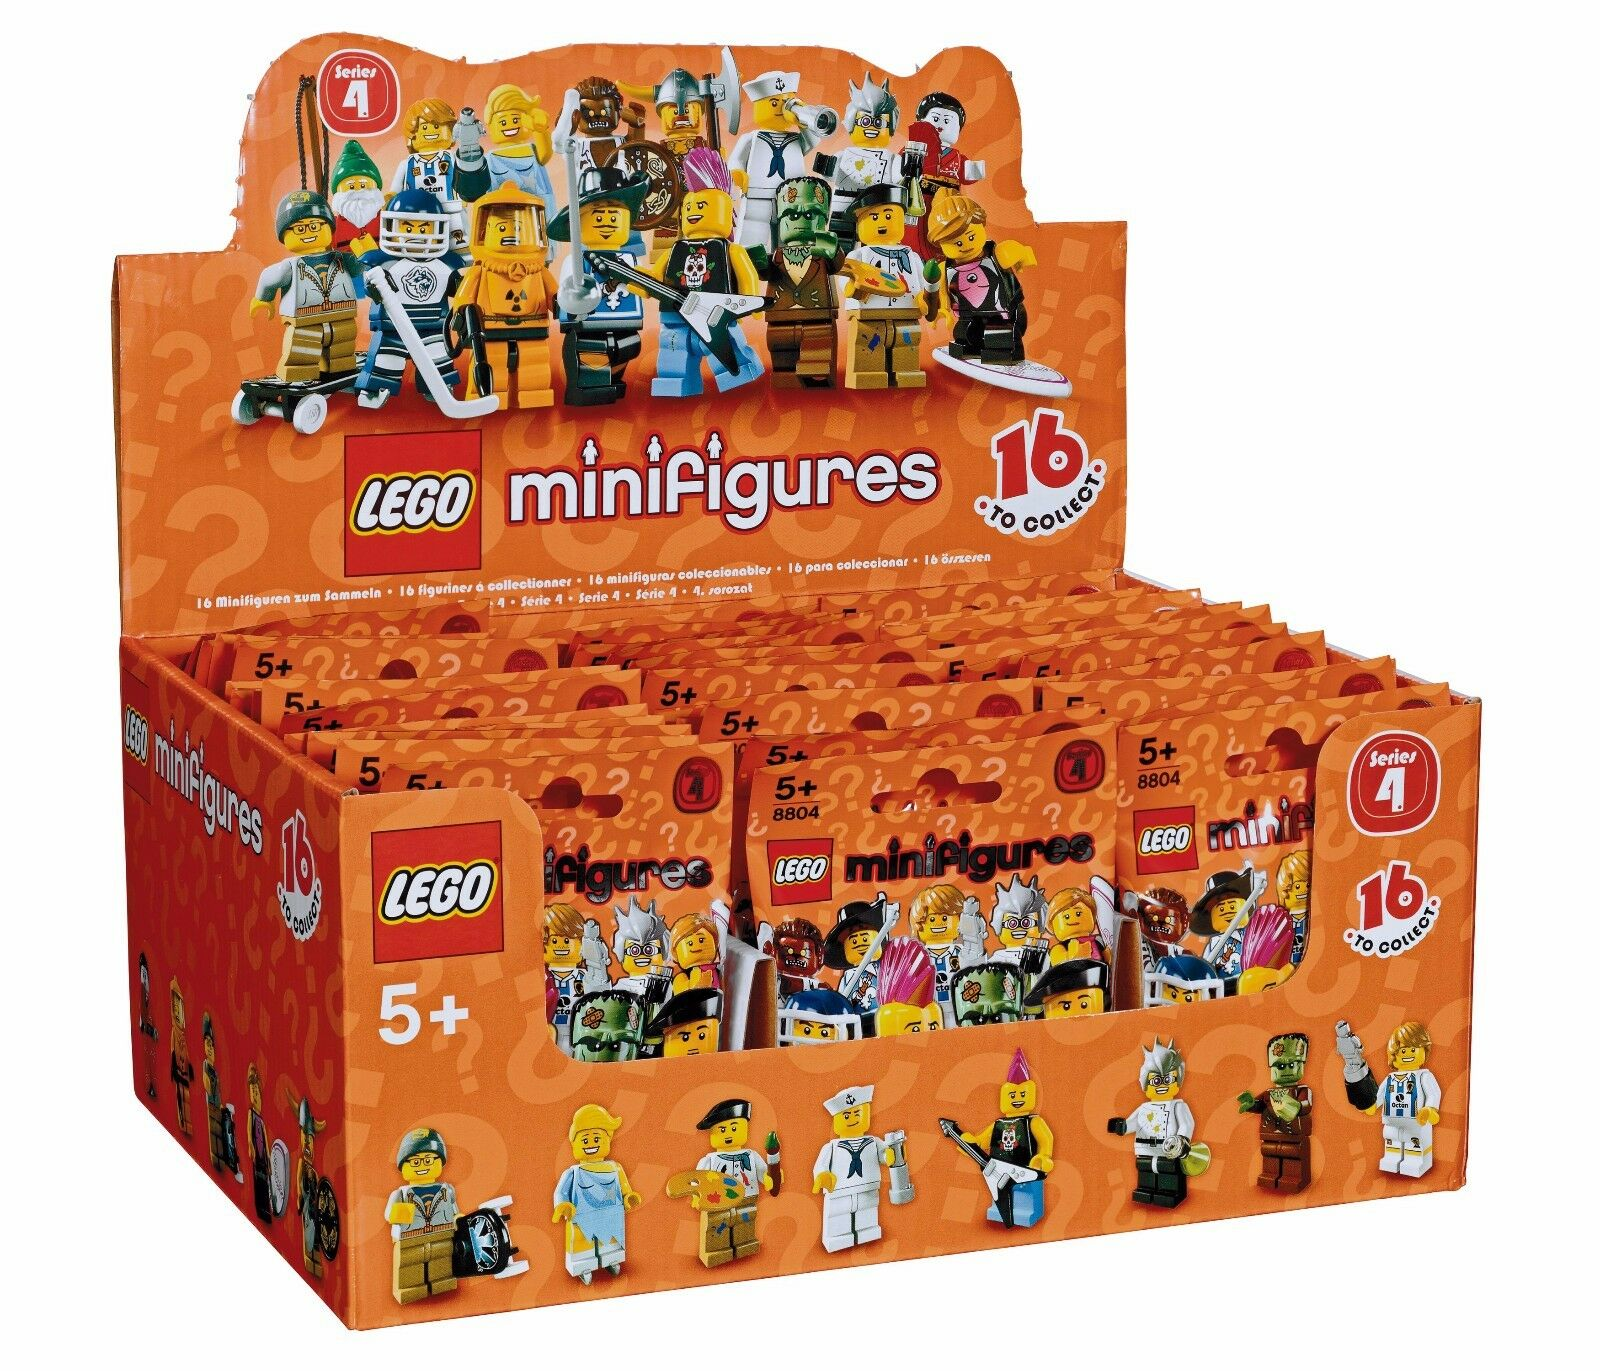 Nuovo Factory Sealed LEGO 8804 Box/Case of 60 Minifigures Series 4